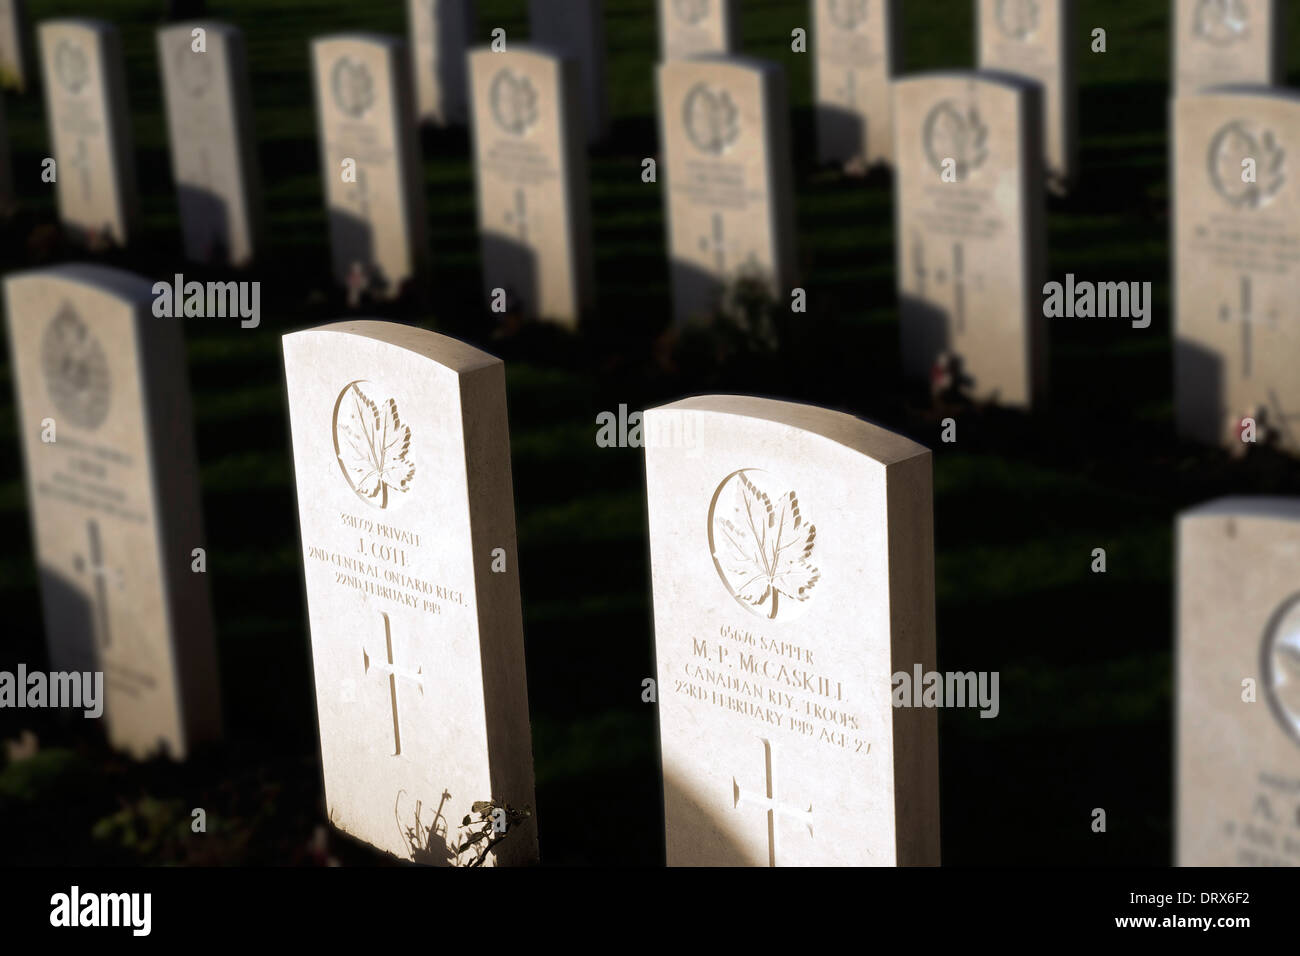 Canadian Gravestones dating from the Great War in the graveyard of St Margaret's Church, Bodelwyddan, North Wales. Stock Photo